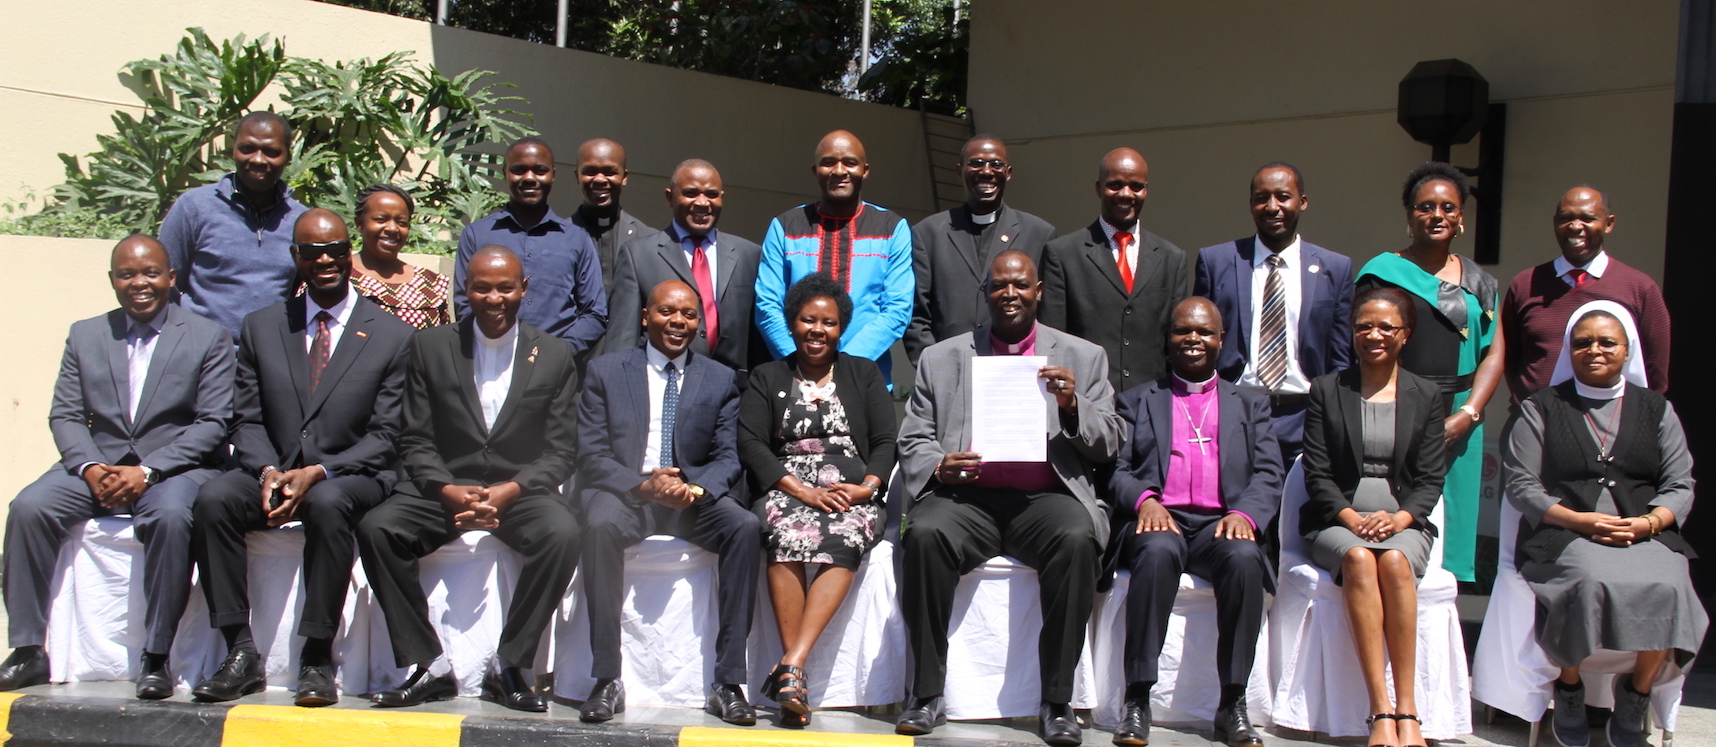 Religious leaders from various Christian denominations and organisations that have committed to fight child abuse in Kenya. ©World Vision Photo/Nelson Olilo